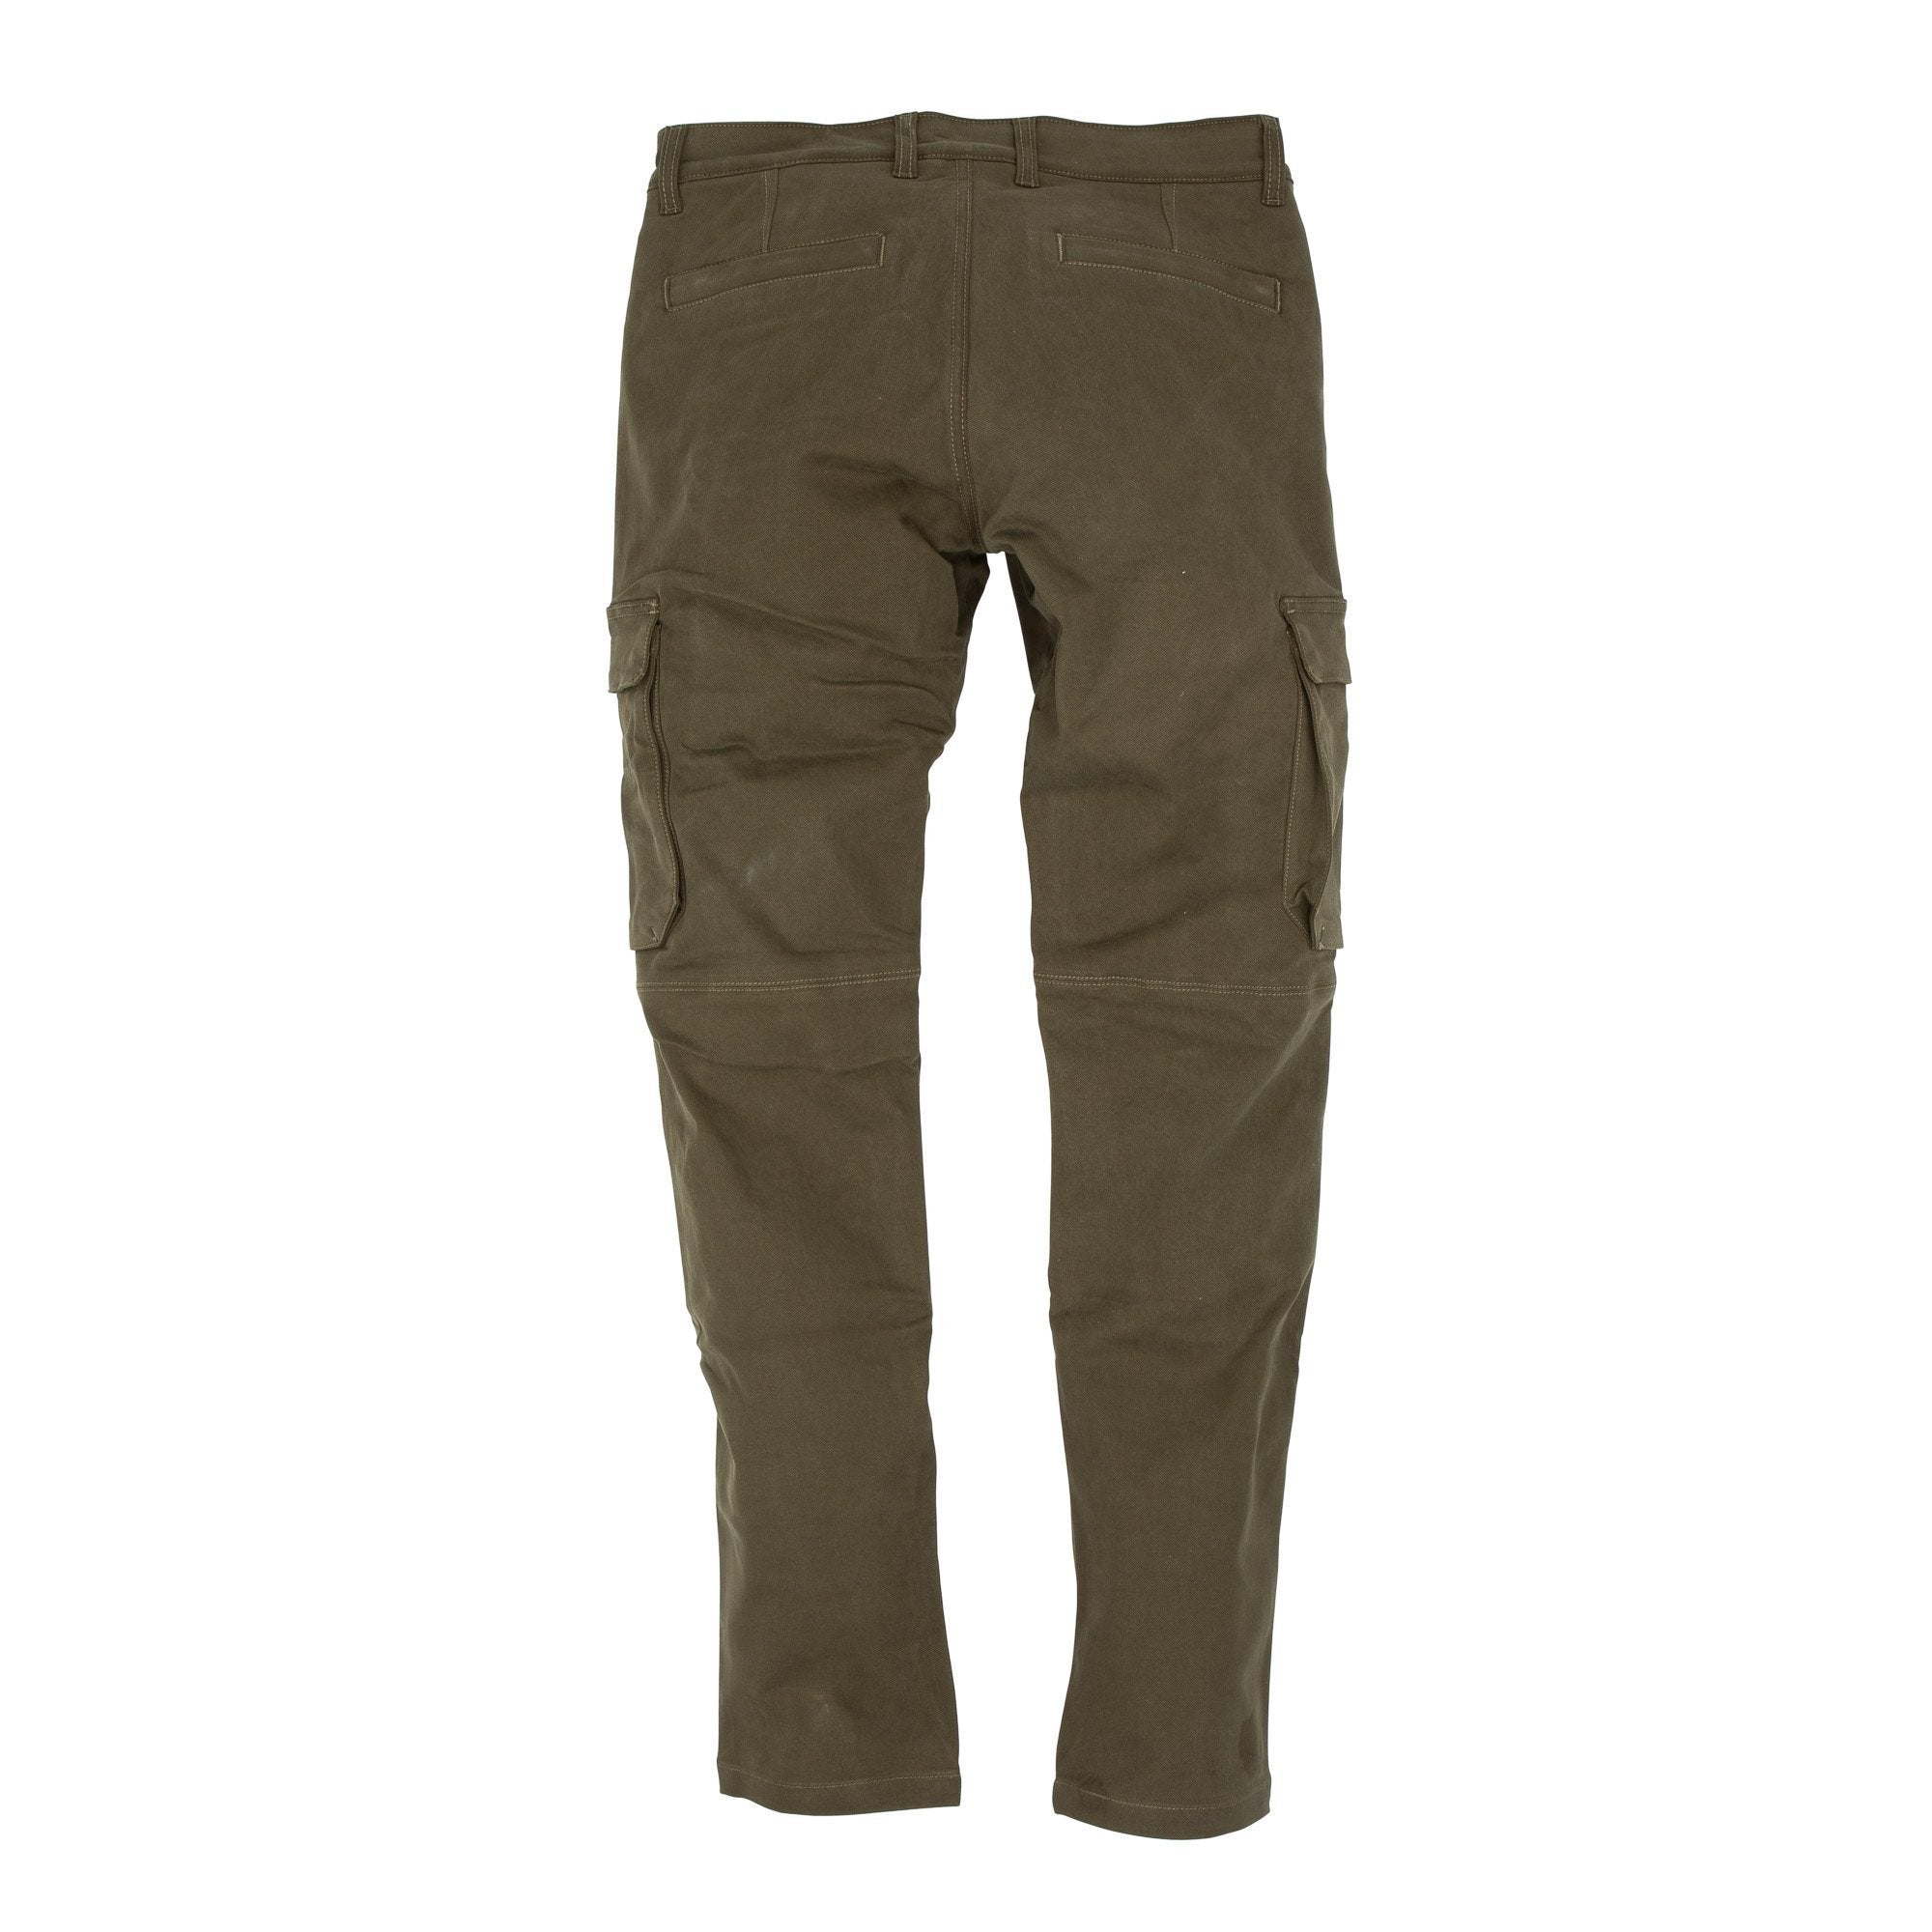 Resurgence Gear Inc. - Resurgence Gear® 2020 Cargo PEKEV Motorcycle Trousers - Military Green - Men's Trousers - Salt Flats Clothing